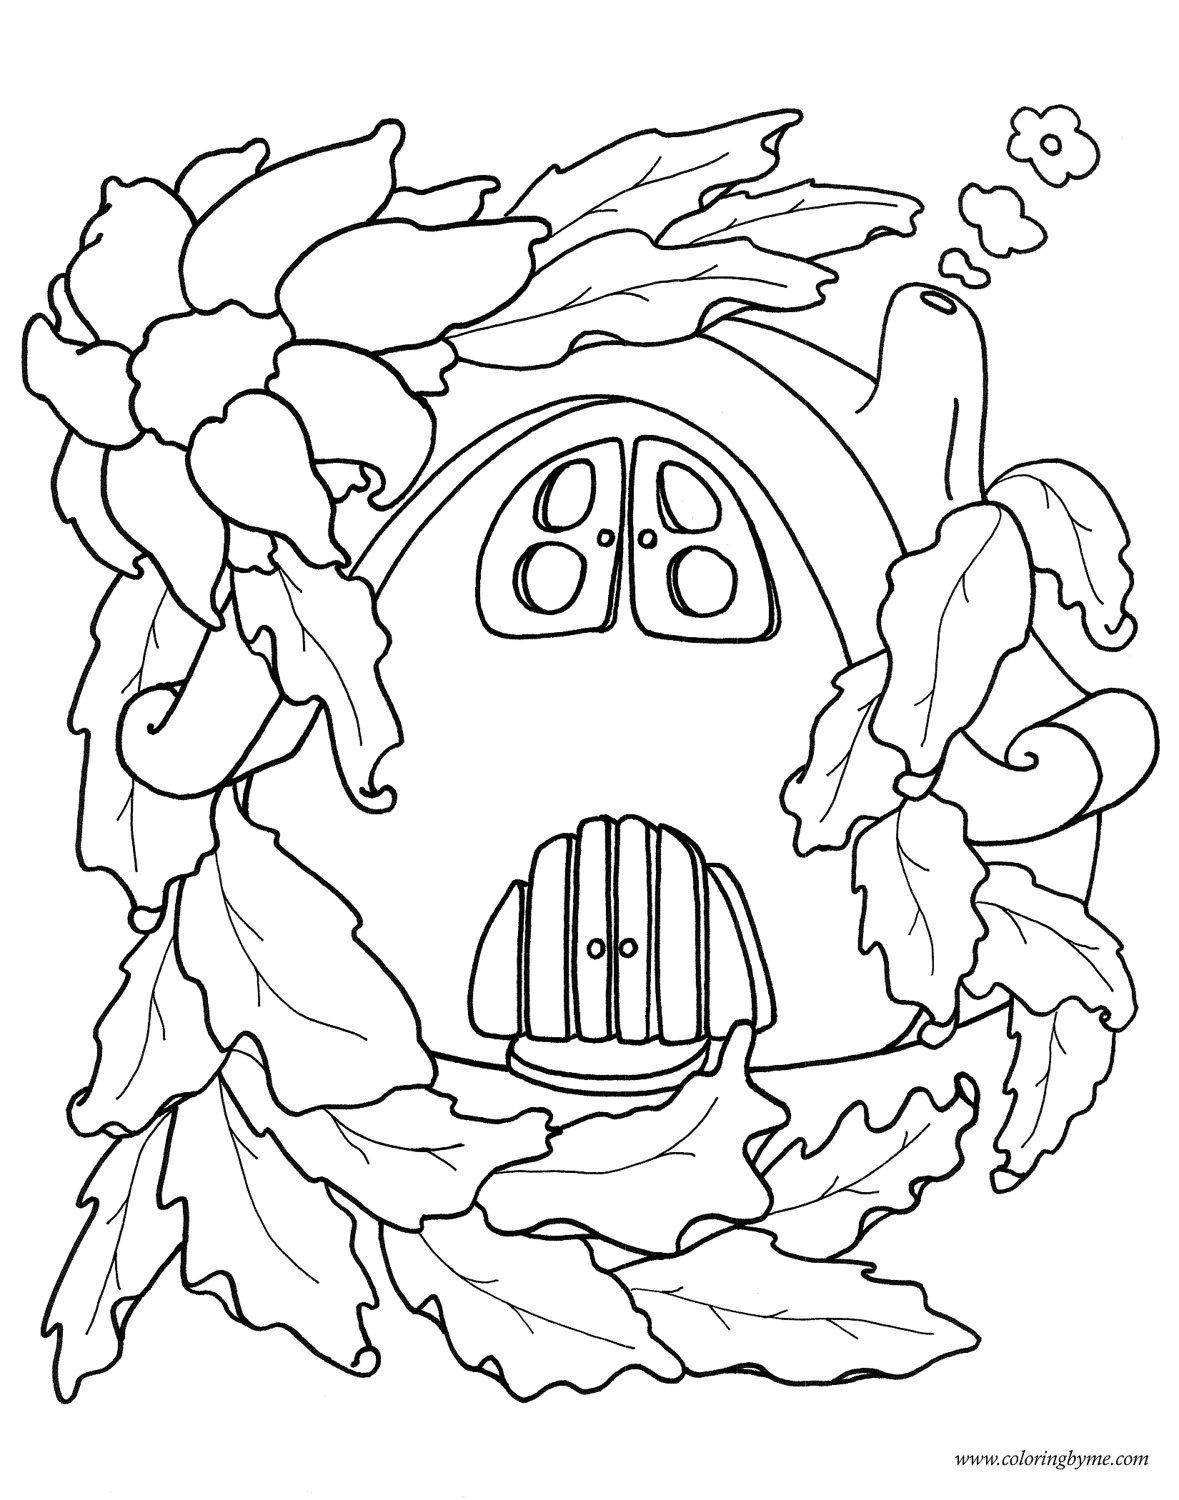 Fairy house coloring page Fairy drawings, Coloring books